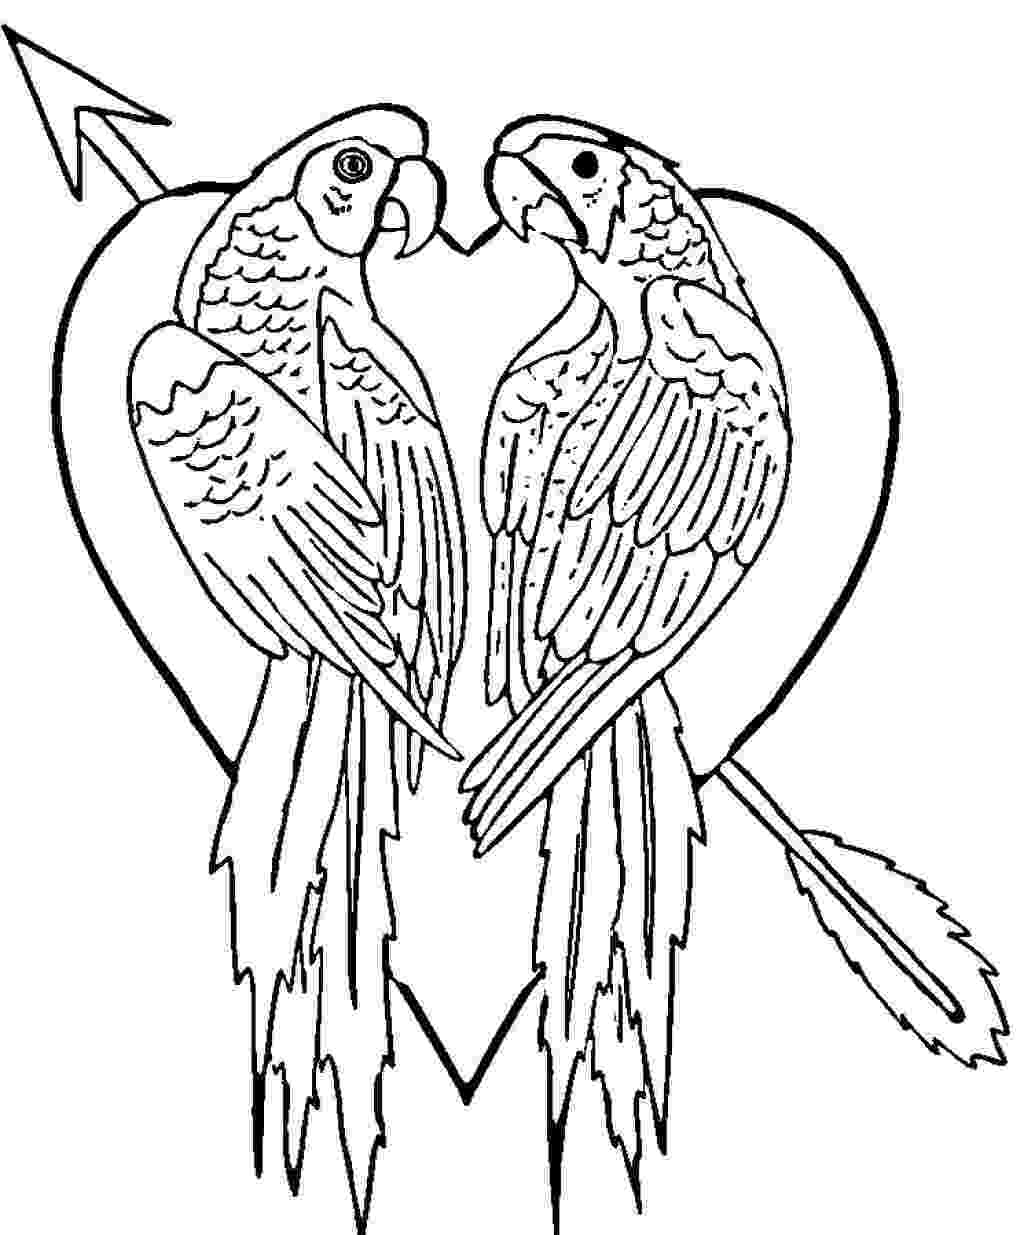 parrot coloring pages free printable parrot coloring pages for kids parrot coloring pages